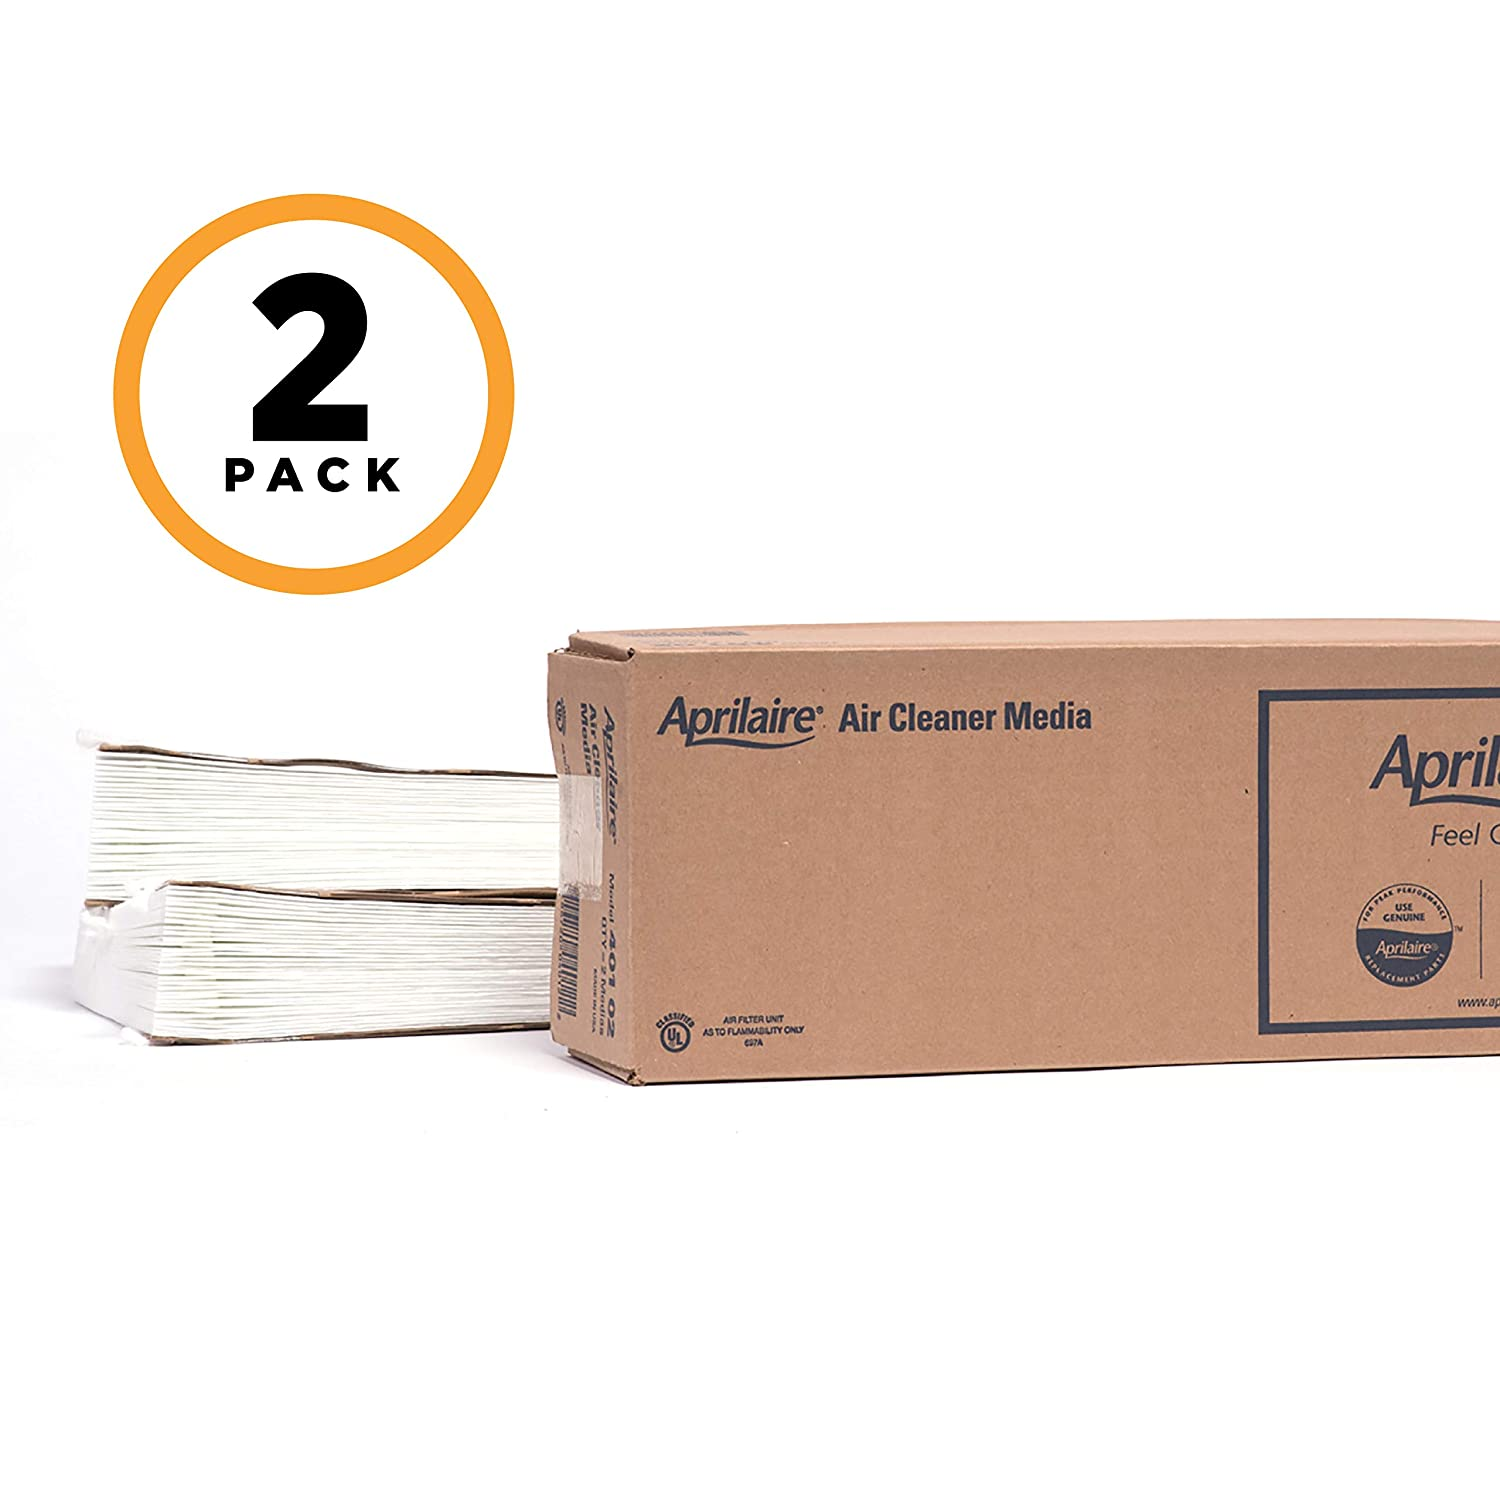 Aprilaire 401 Replacement Filter for Aprilaire Whole House Air Purifier Model: 2400, Space Gard 2400, MERV 10 (Pack of 2)